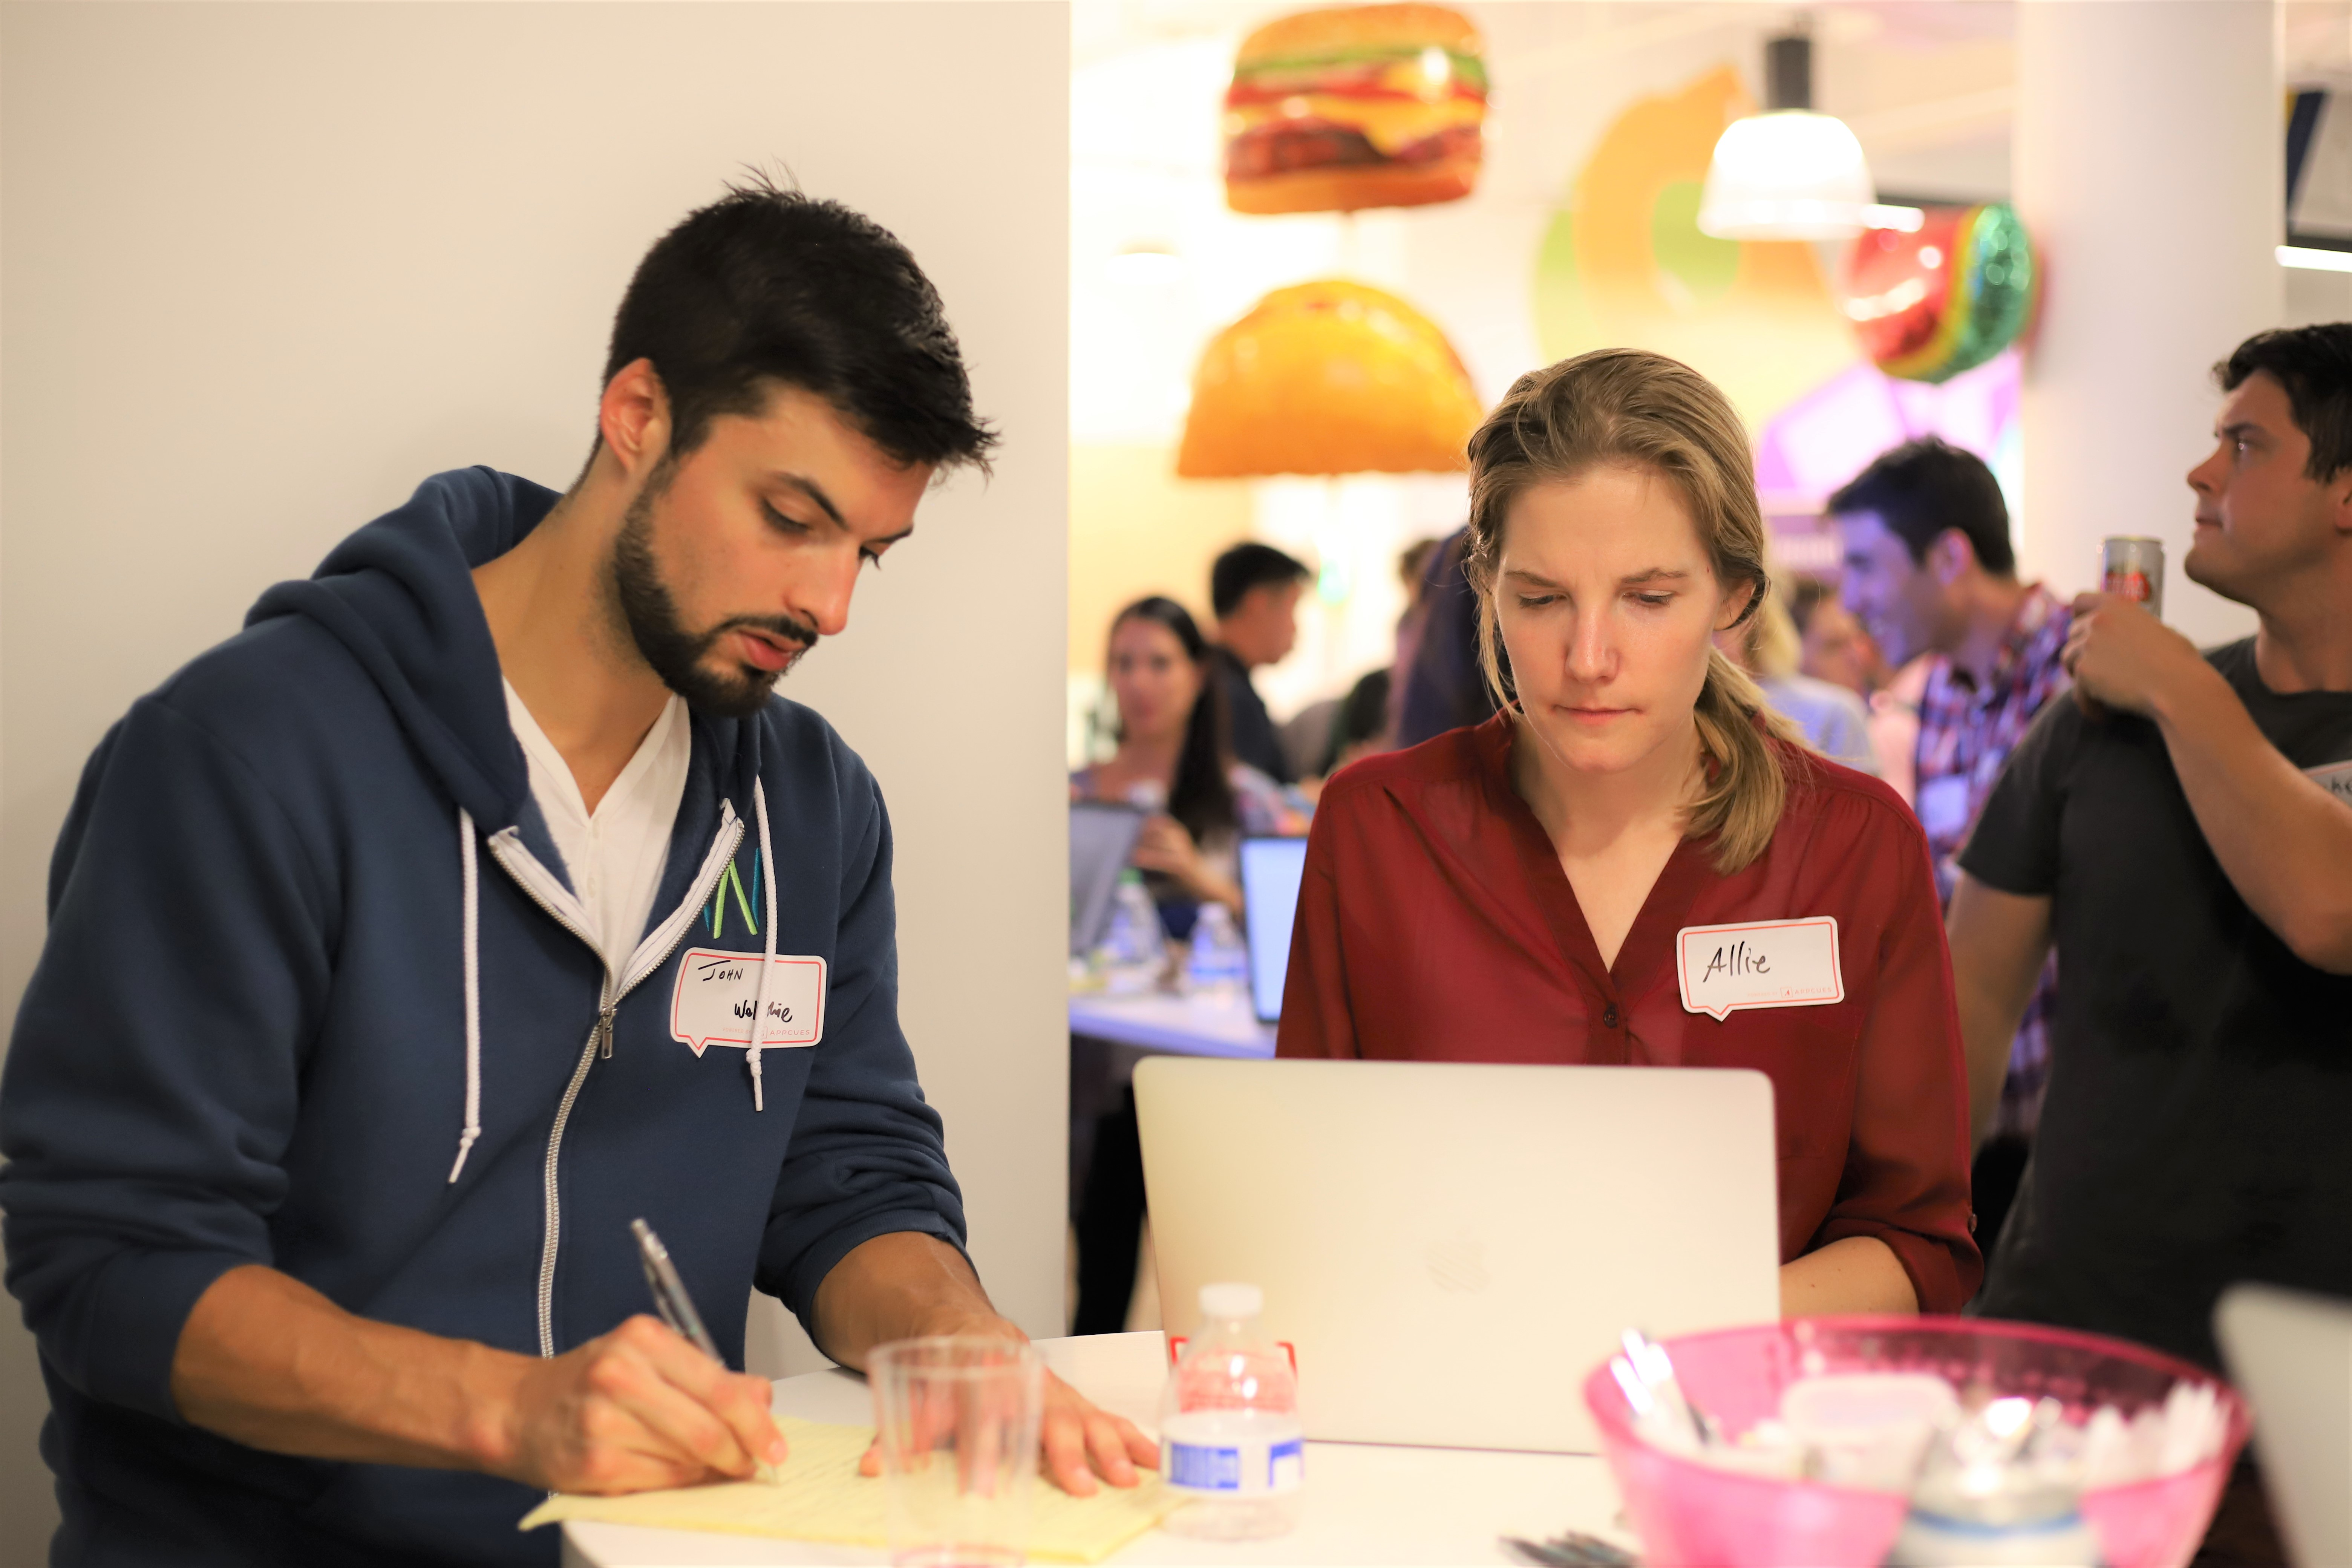 This is a picture of two users testing a product at a user testing event. This is a photo of a man and a woman wearing nametags and writing feedback about a software product that they are testing live.